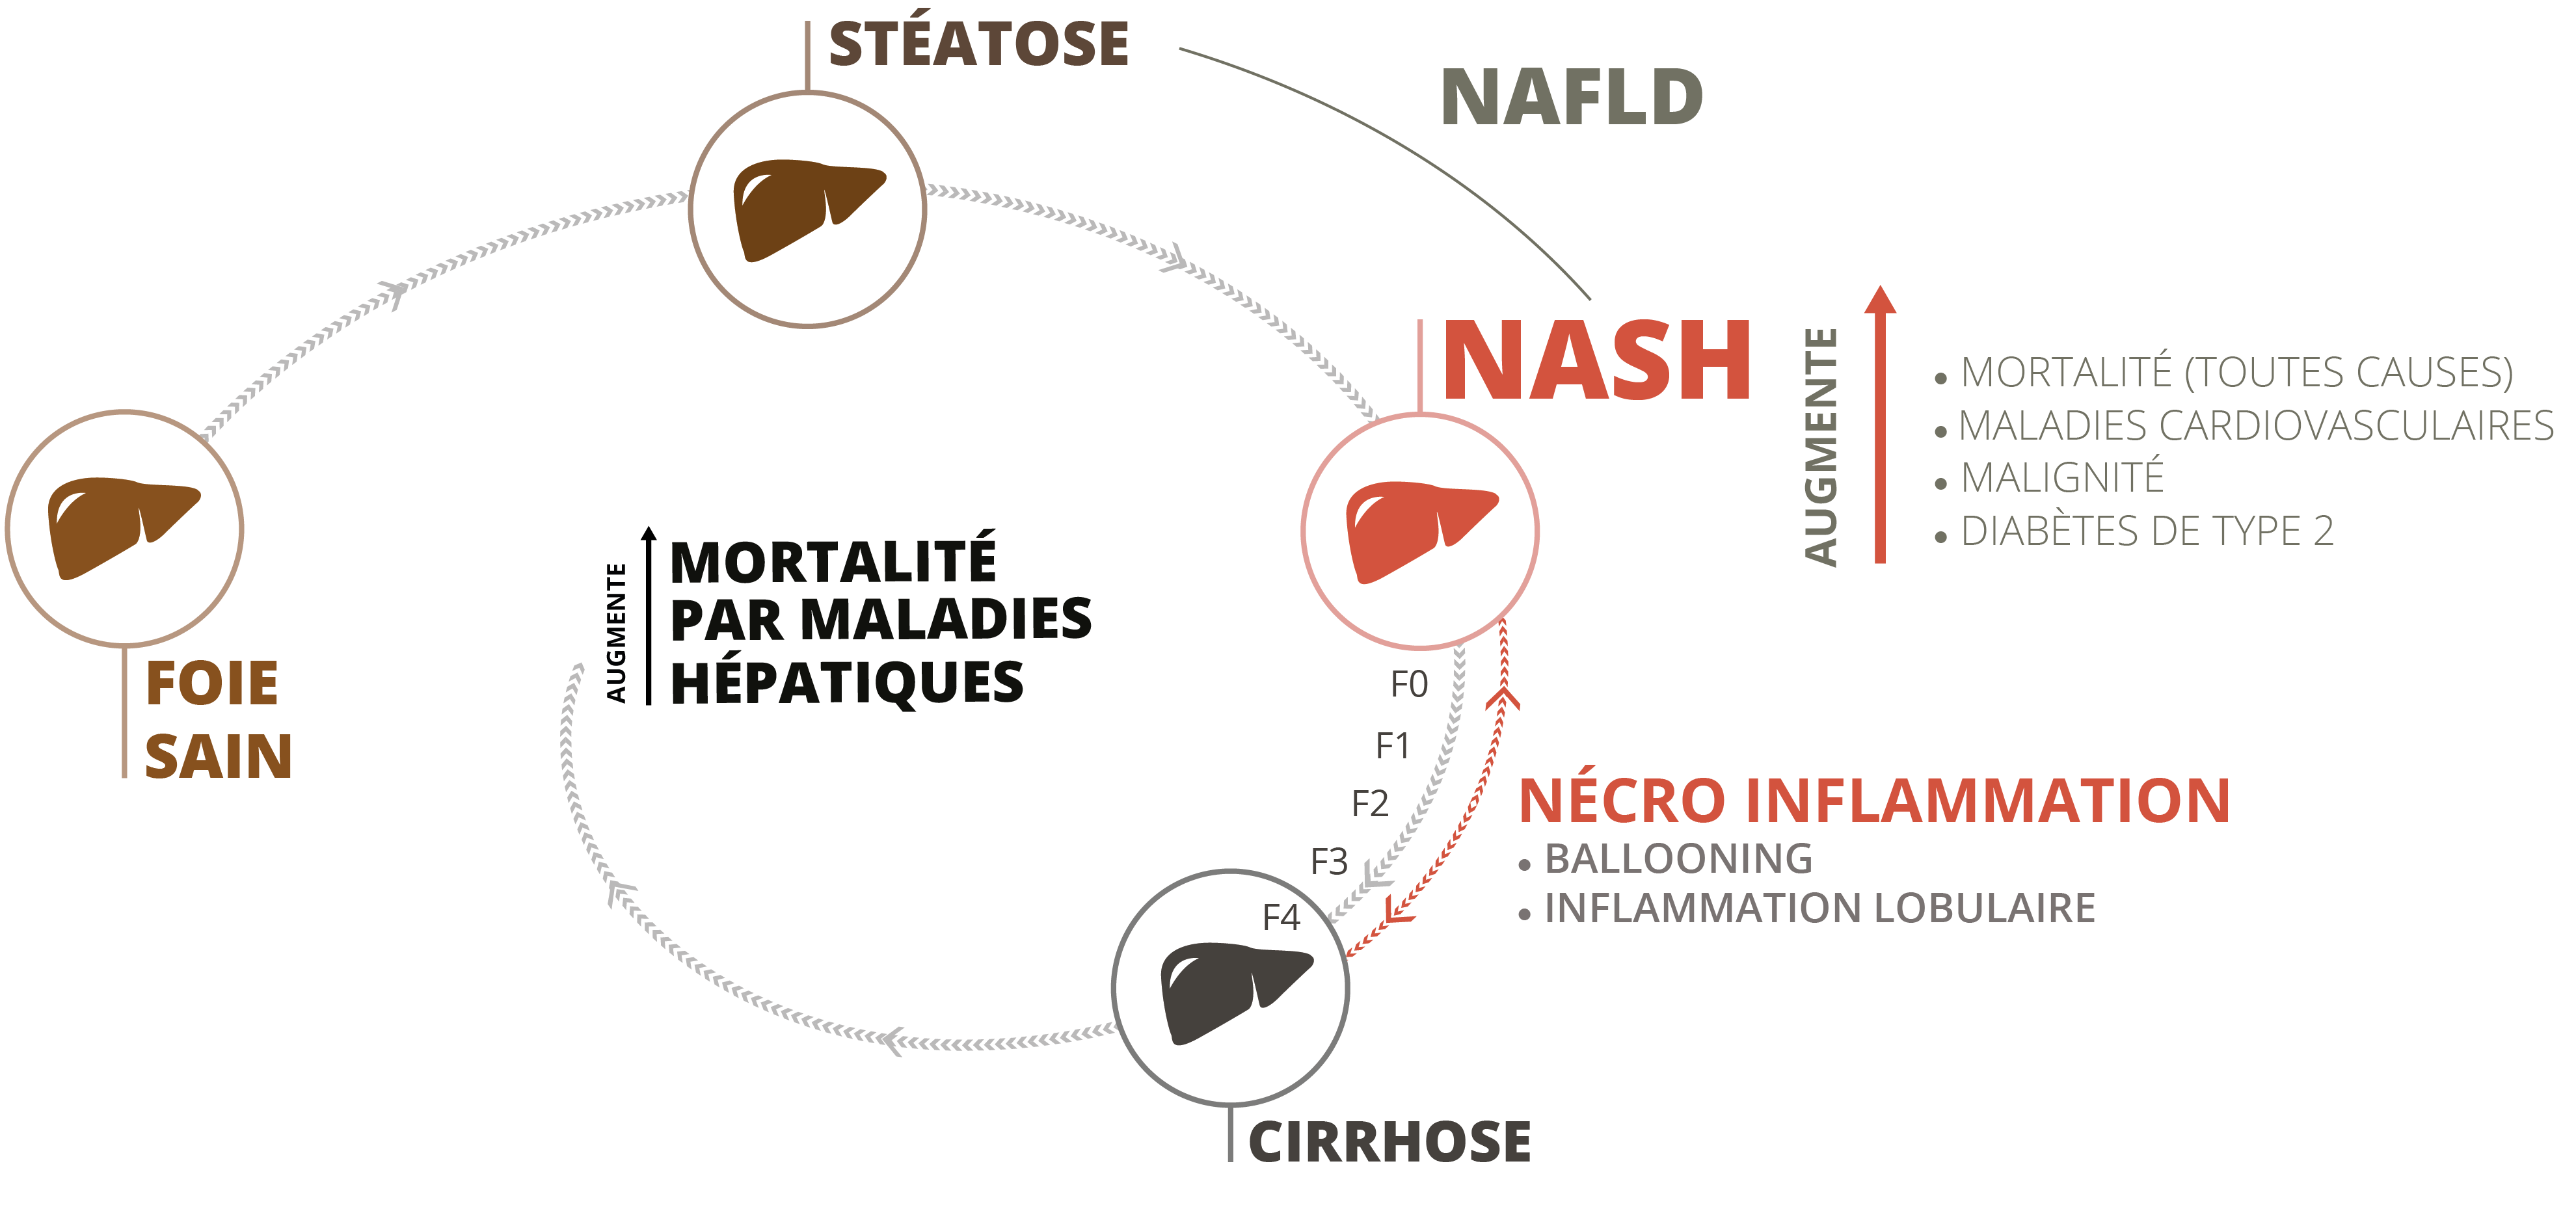 NASH naturopathie